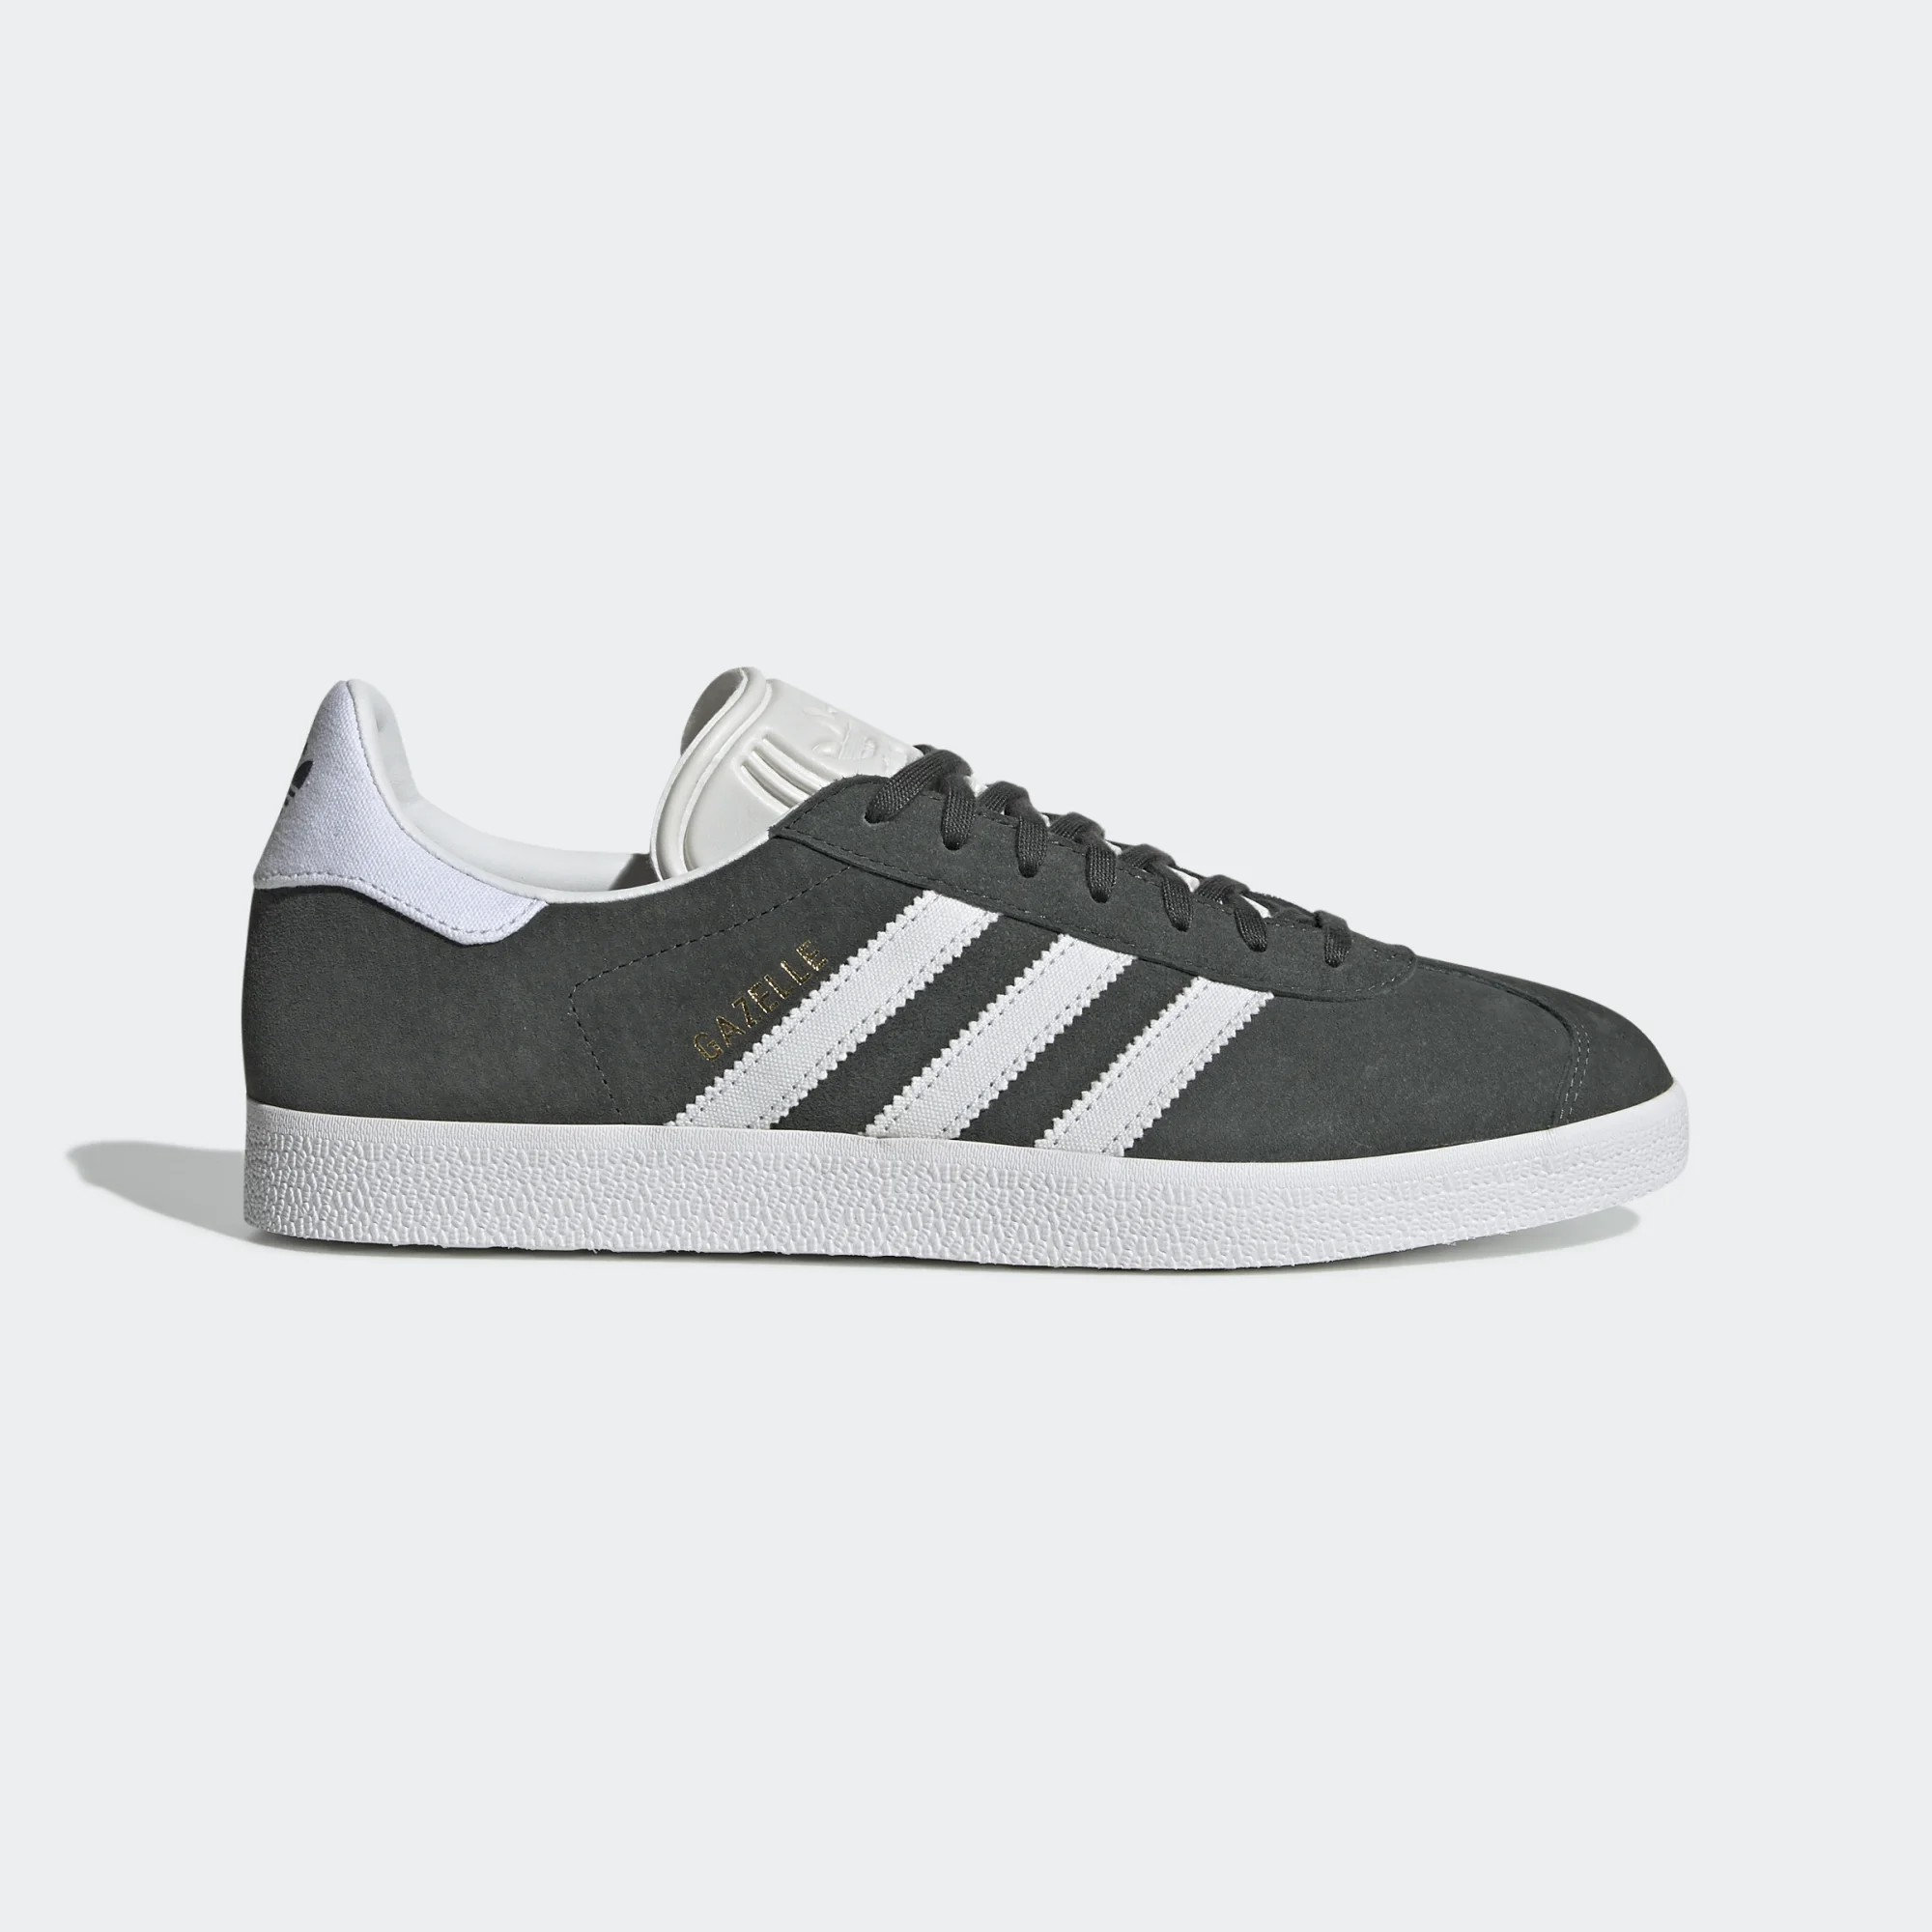 Adidas Men Gazelle Shoes Legend Ivy/Crystal White CM8469